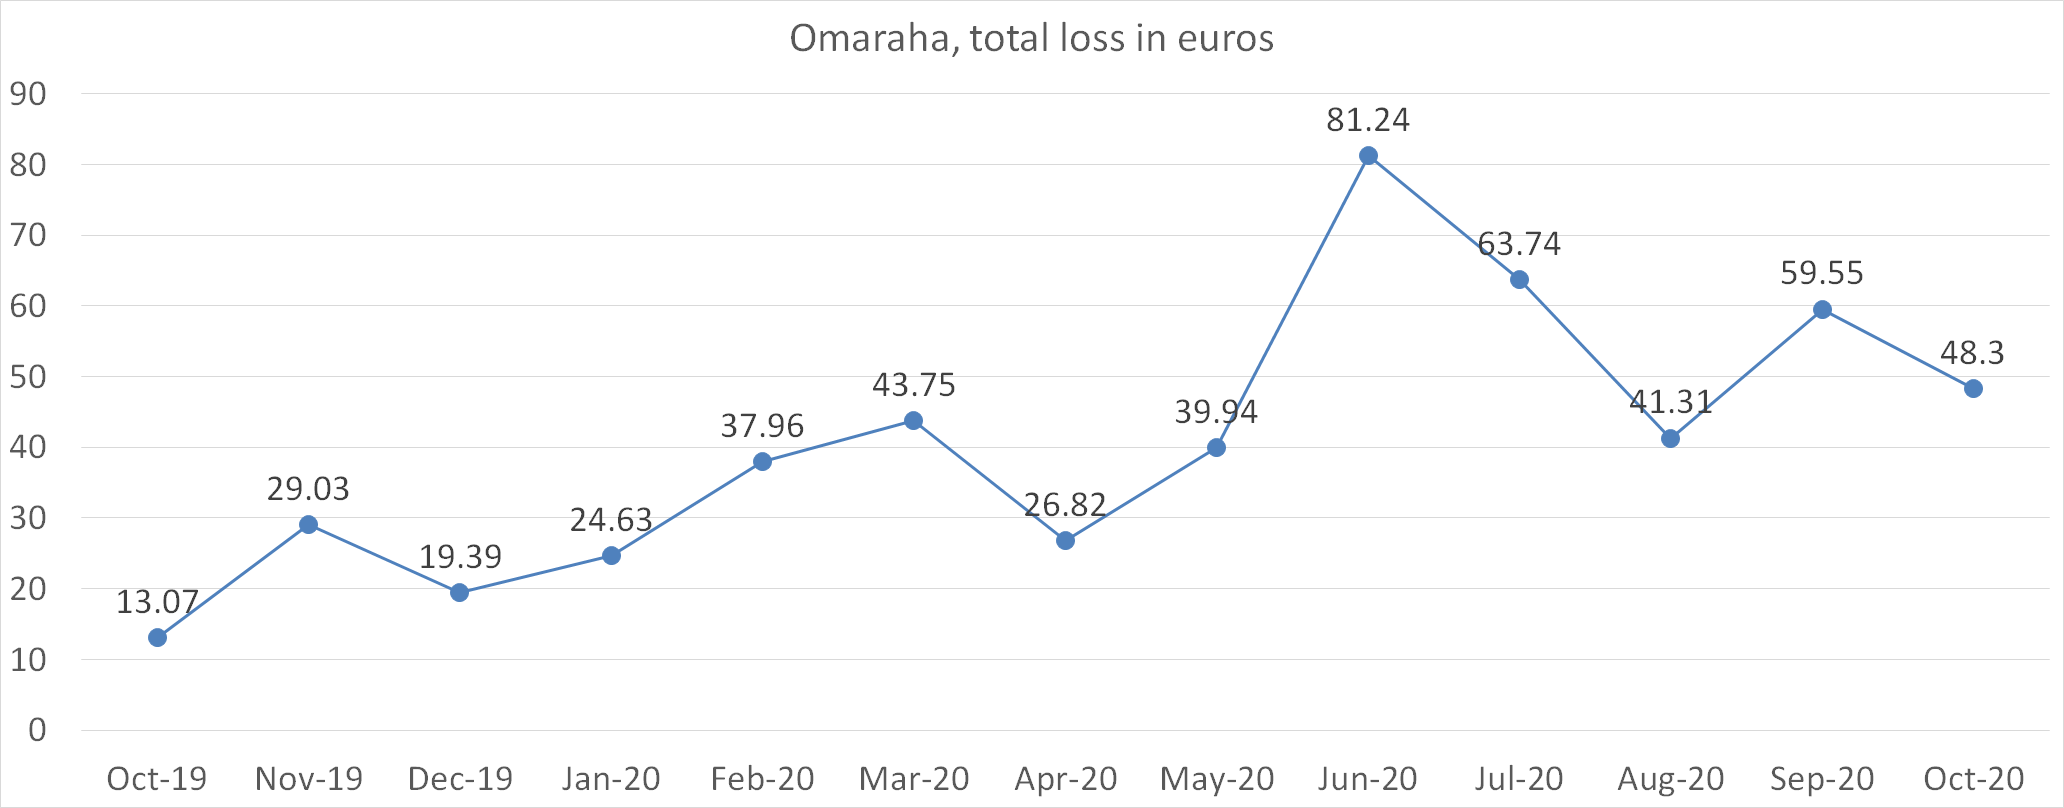 Omaraha, total loss in euros october 2020